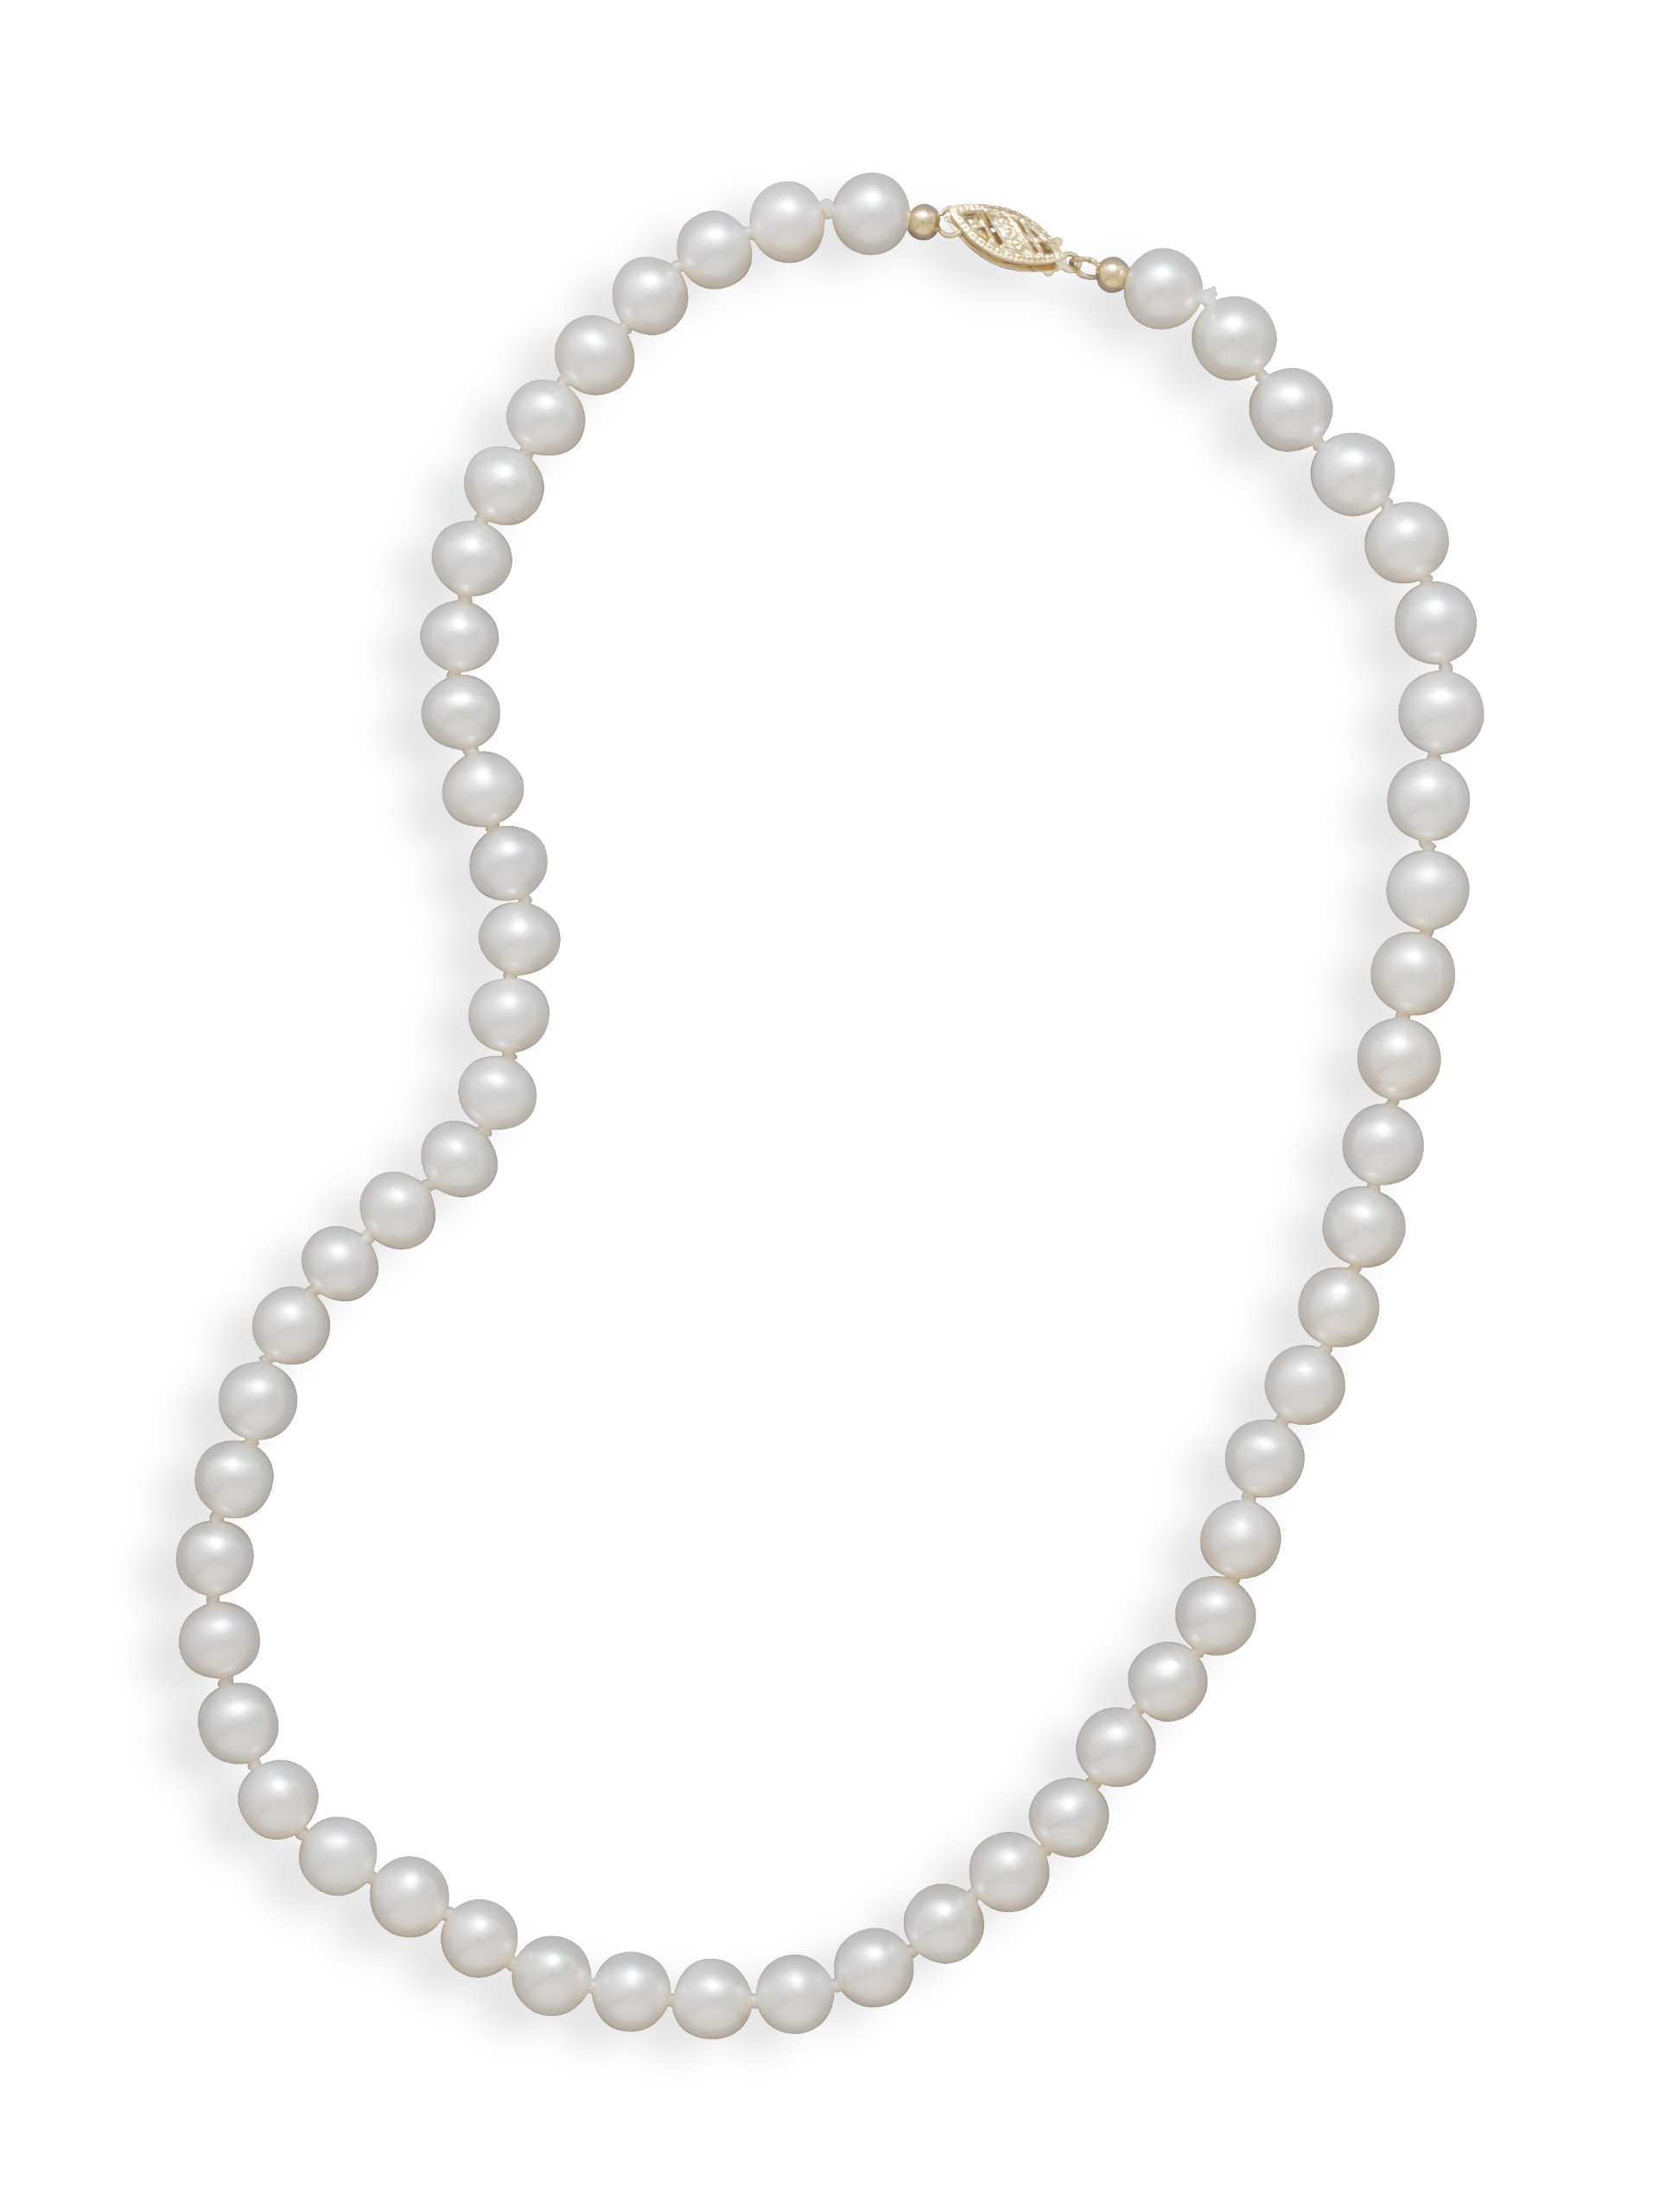 Cultured Freshwater Pearls, 24 in Knotted Matinee-Length Necklace,14K Clasp, 6.5-7mm